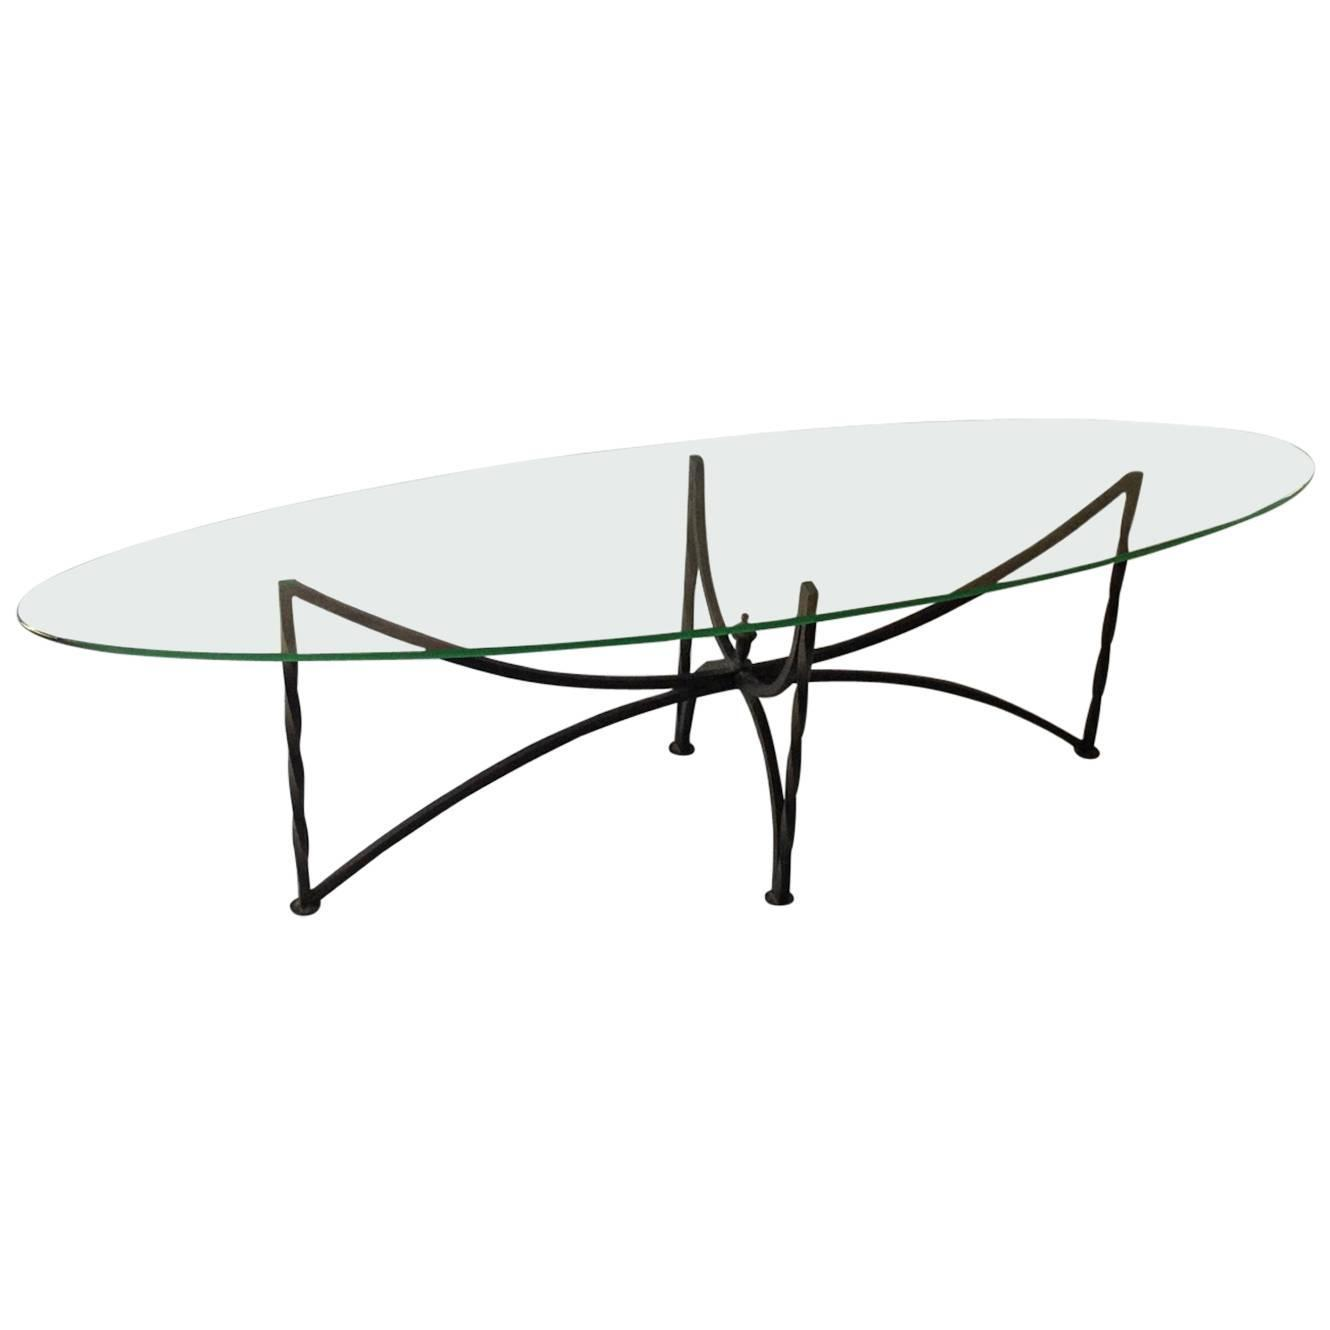 Oval glass top coffee table with wrought iron base at 1stdibs for Oval wrought iron coffee table with glass top